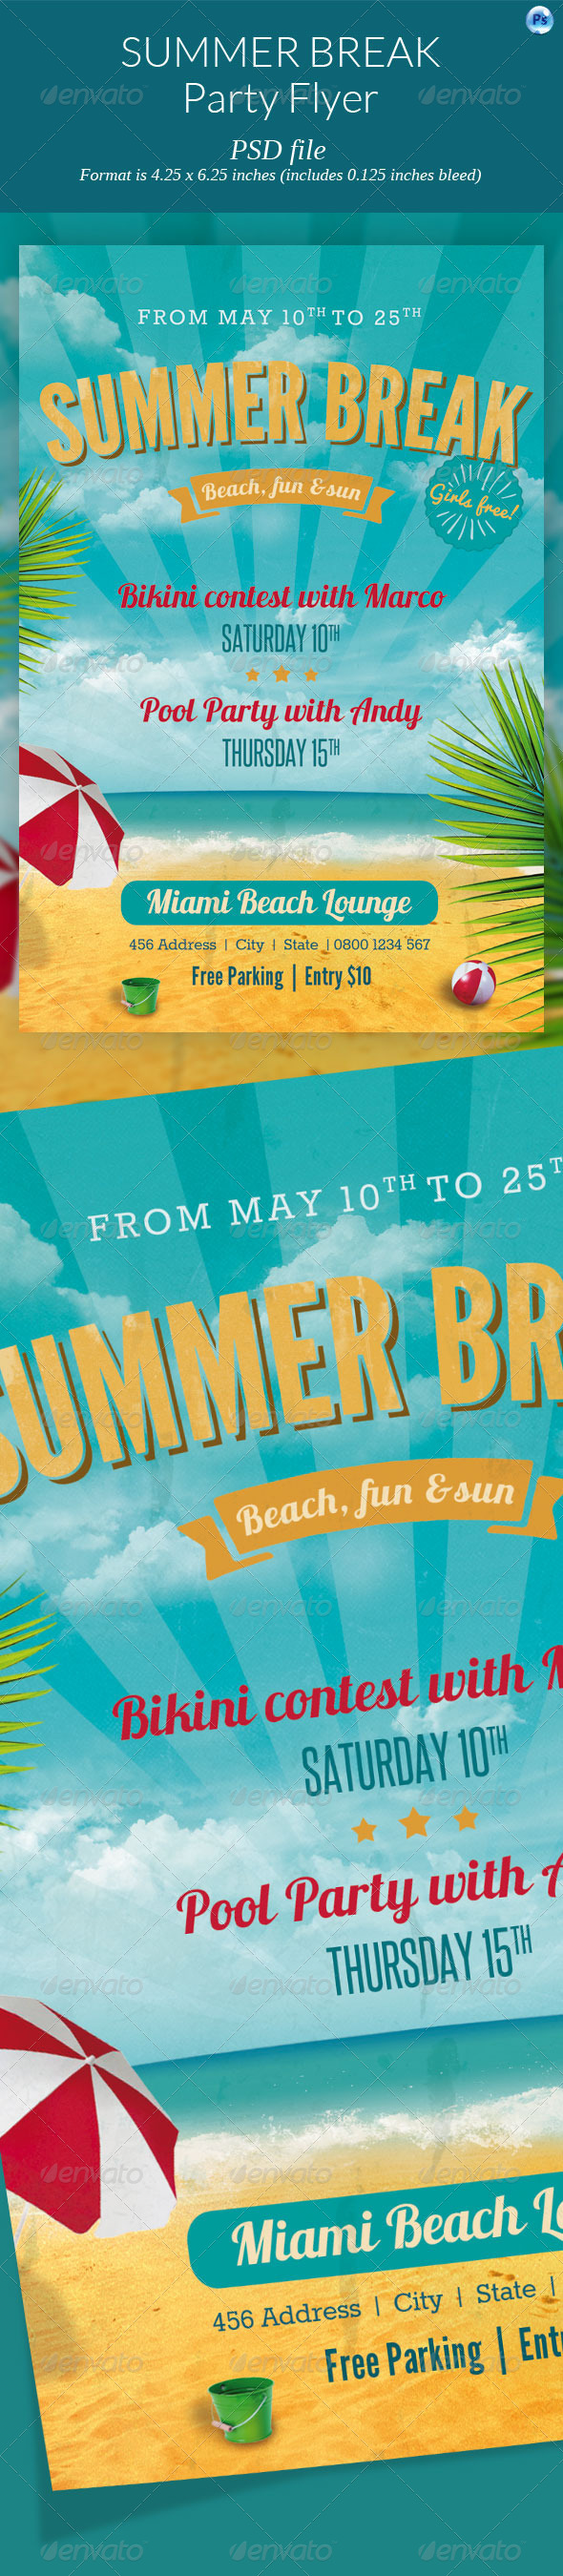 GraphicRiver Summer Break Party Flyer 7620934